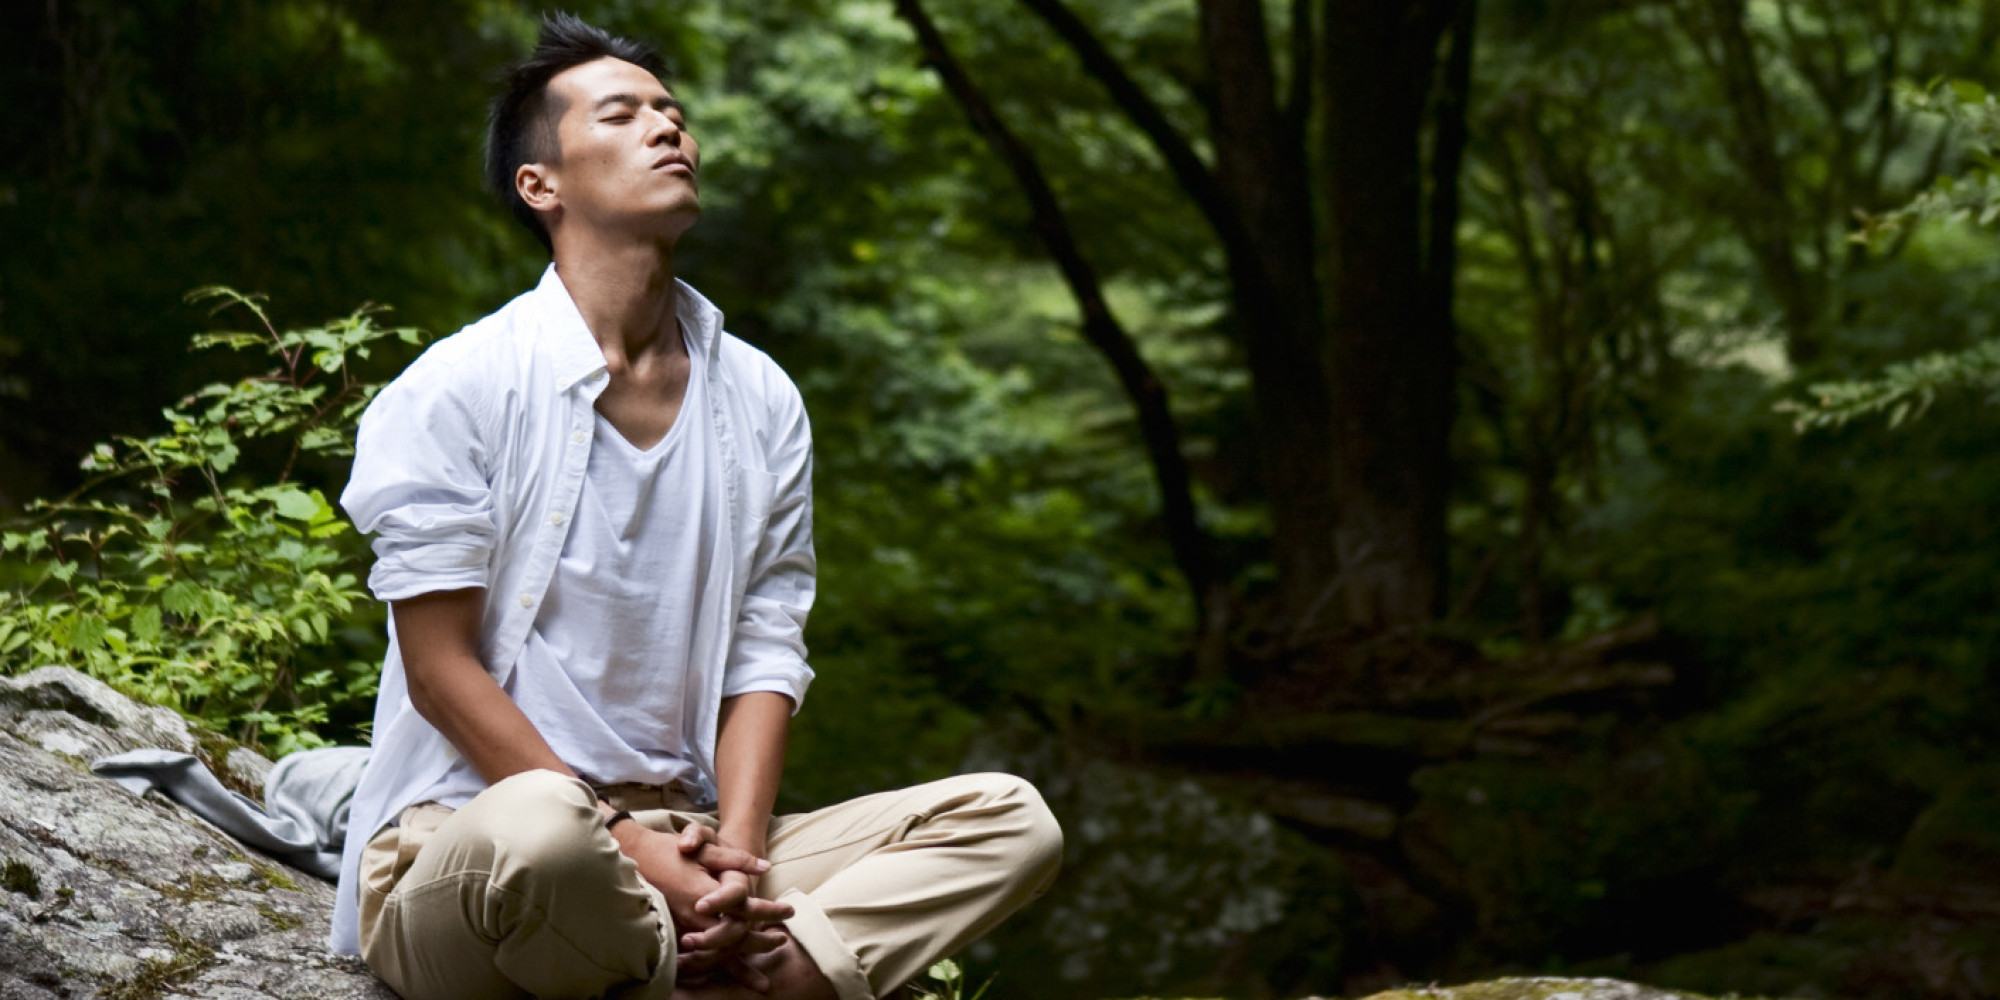 [discussion] Do you meditate? - The Lounge - ATRL